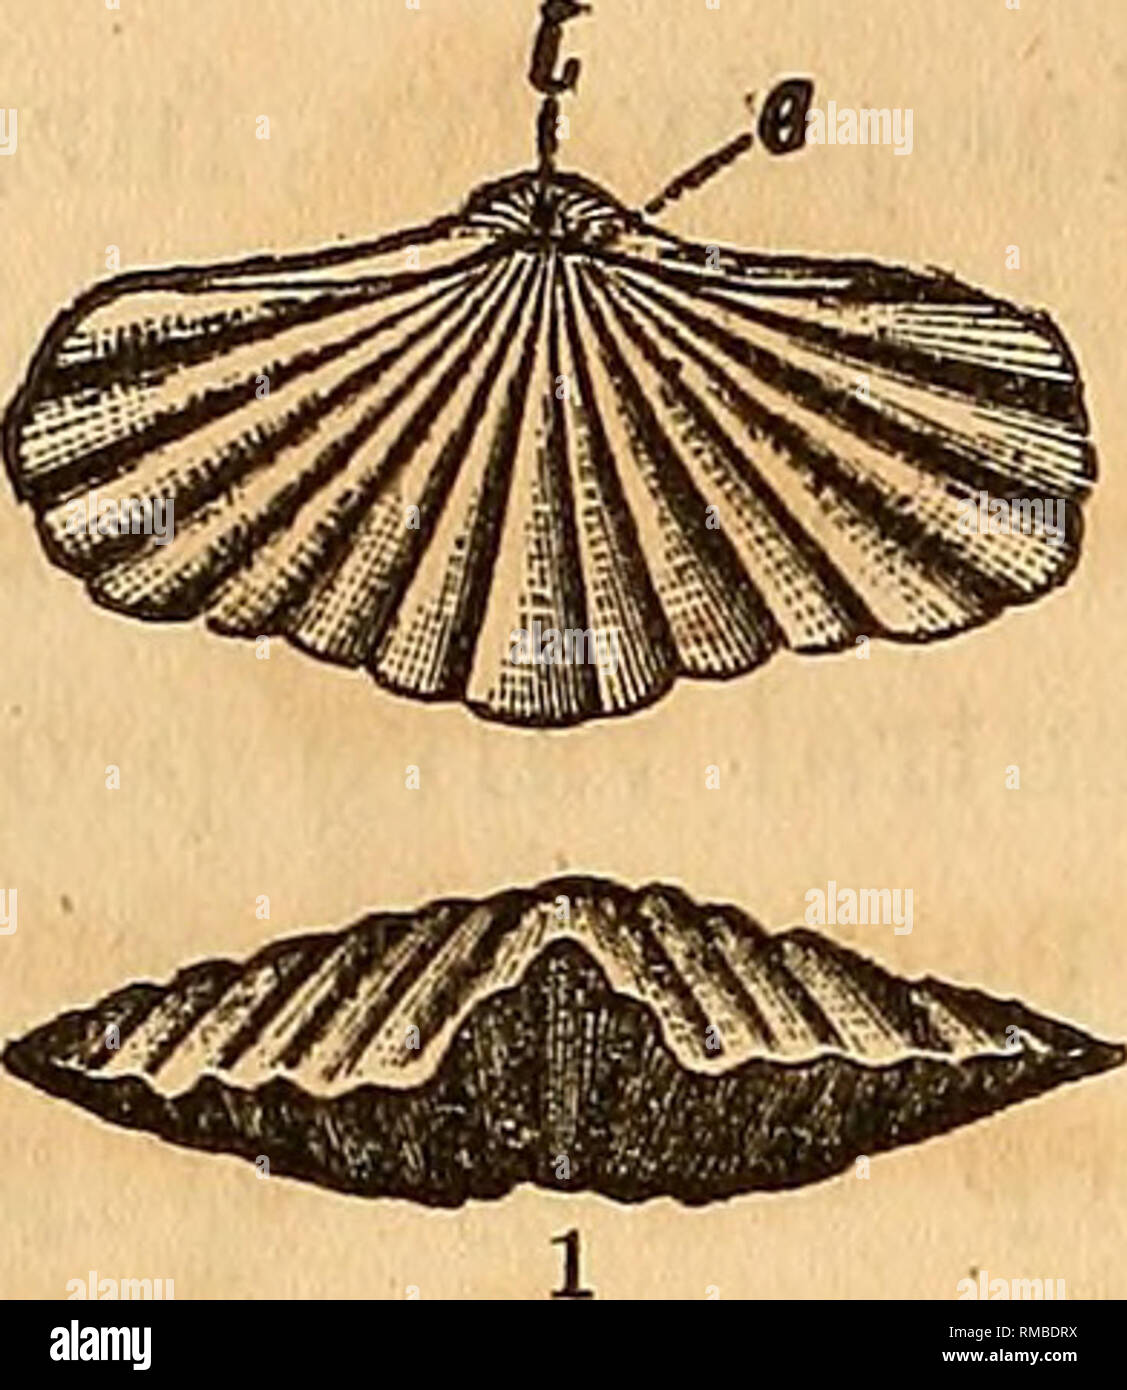 . Annual report of the regents of the university of the state of New York on the condition of the State Cabinet of Natural History and the historical and antiquarian collection annexed thereto. Science. 28 [Assembly The species positively determined to tlie present time are from the rocks of the Lower Helderberg group ; to which may be added the Trematospira {Atrypa) camura of the Niagara group, which presents some slight devia- tion in the perforation of the beak, and a species from the Hamilton group which is apparently of the same genus.. Please note that these images are extracted from sca Stock Photo